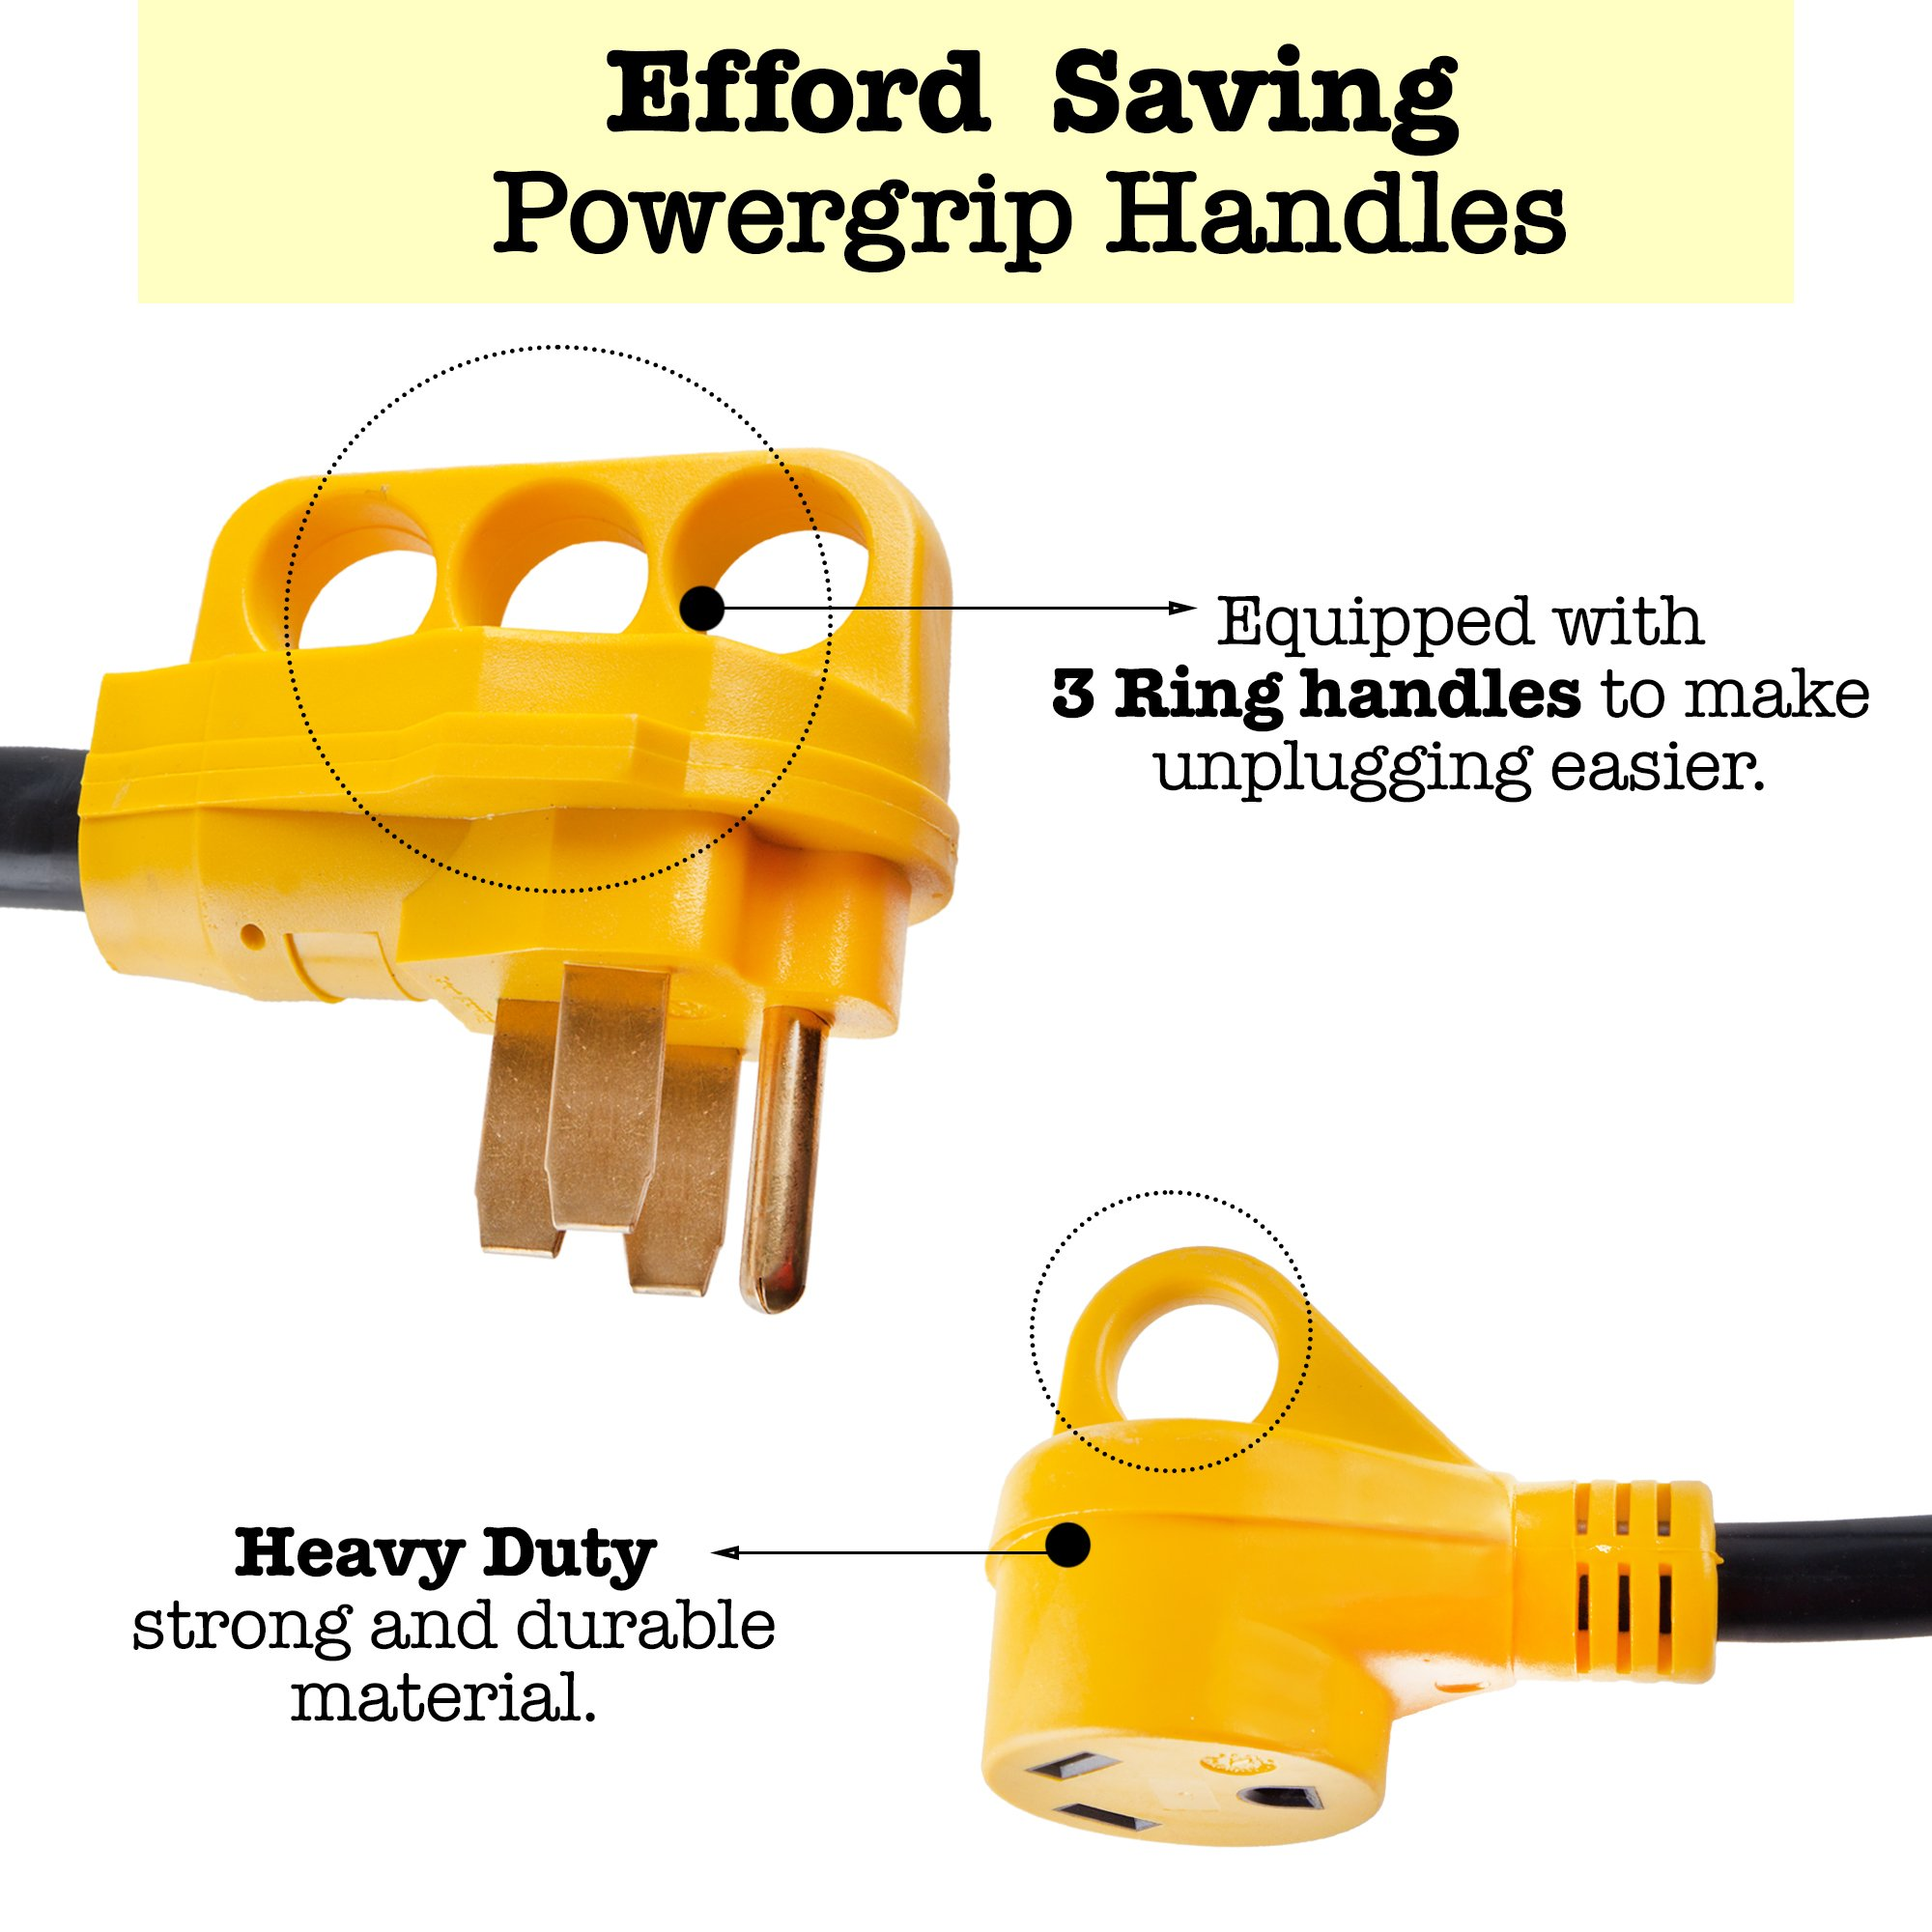 Proline Power RV Camper Y Adapter Cord with Handles - 50 Amp Male Plug to (2) 30 Amp RV Female Connectors by Proline Power (Image #2)